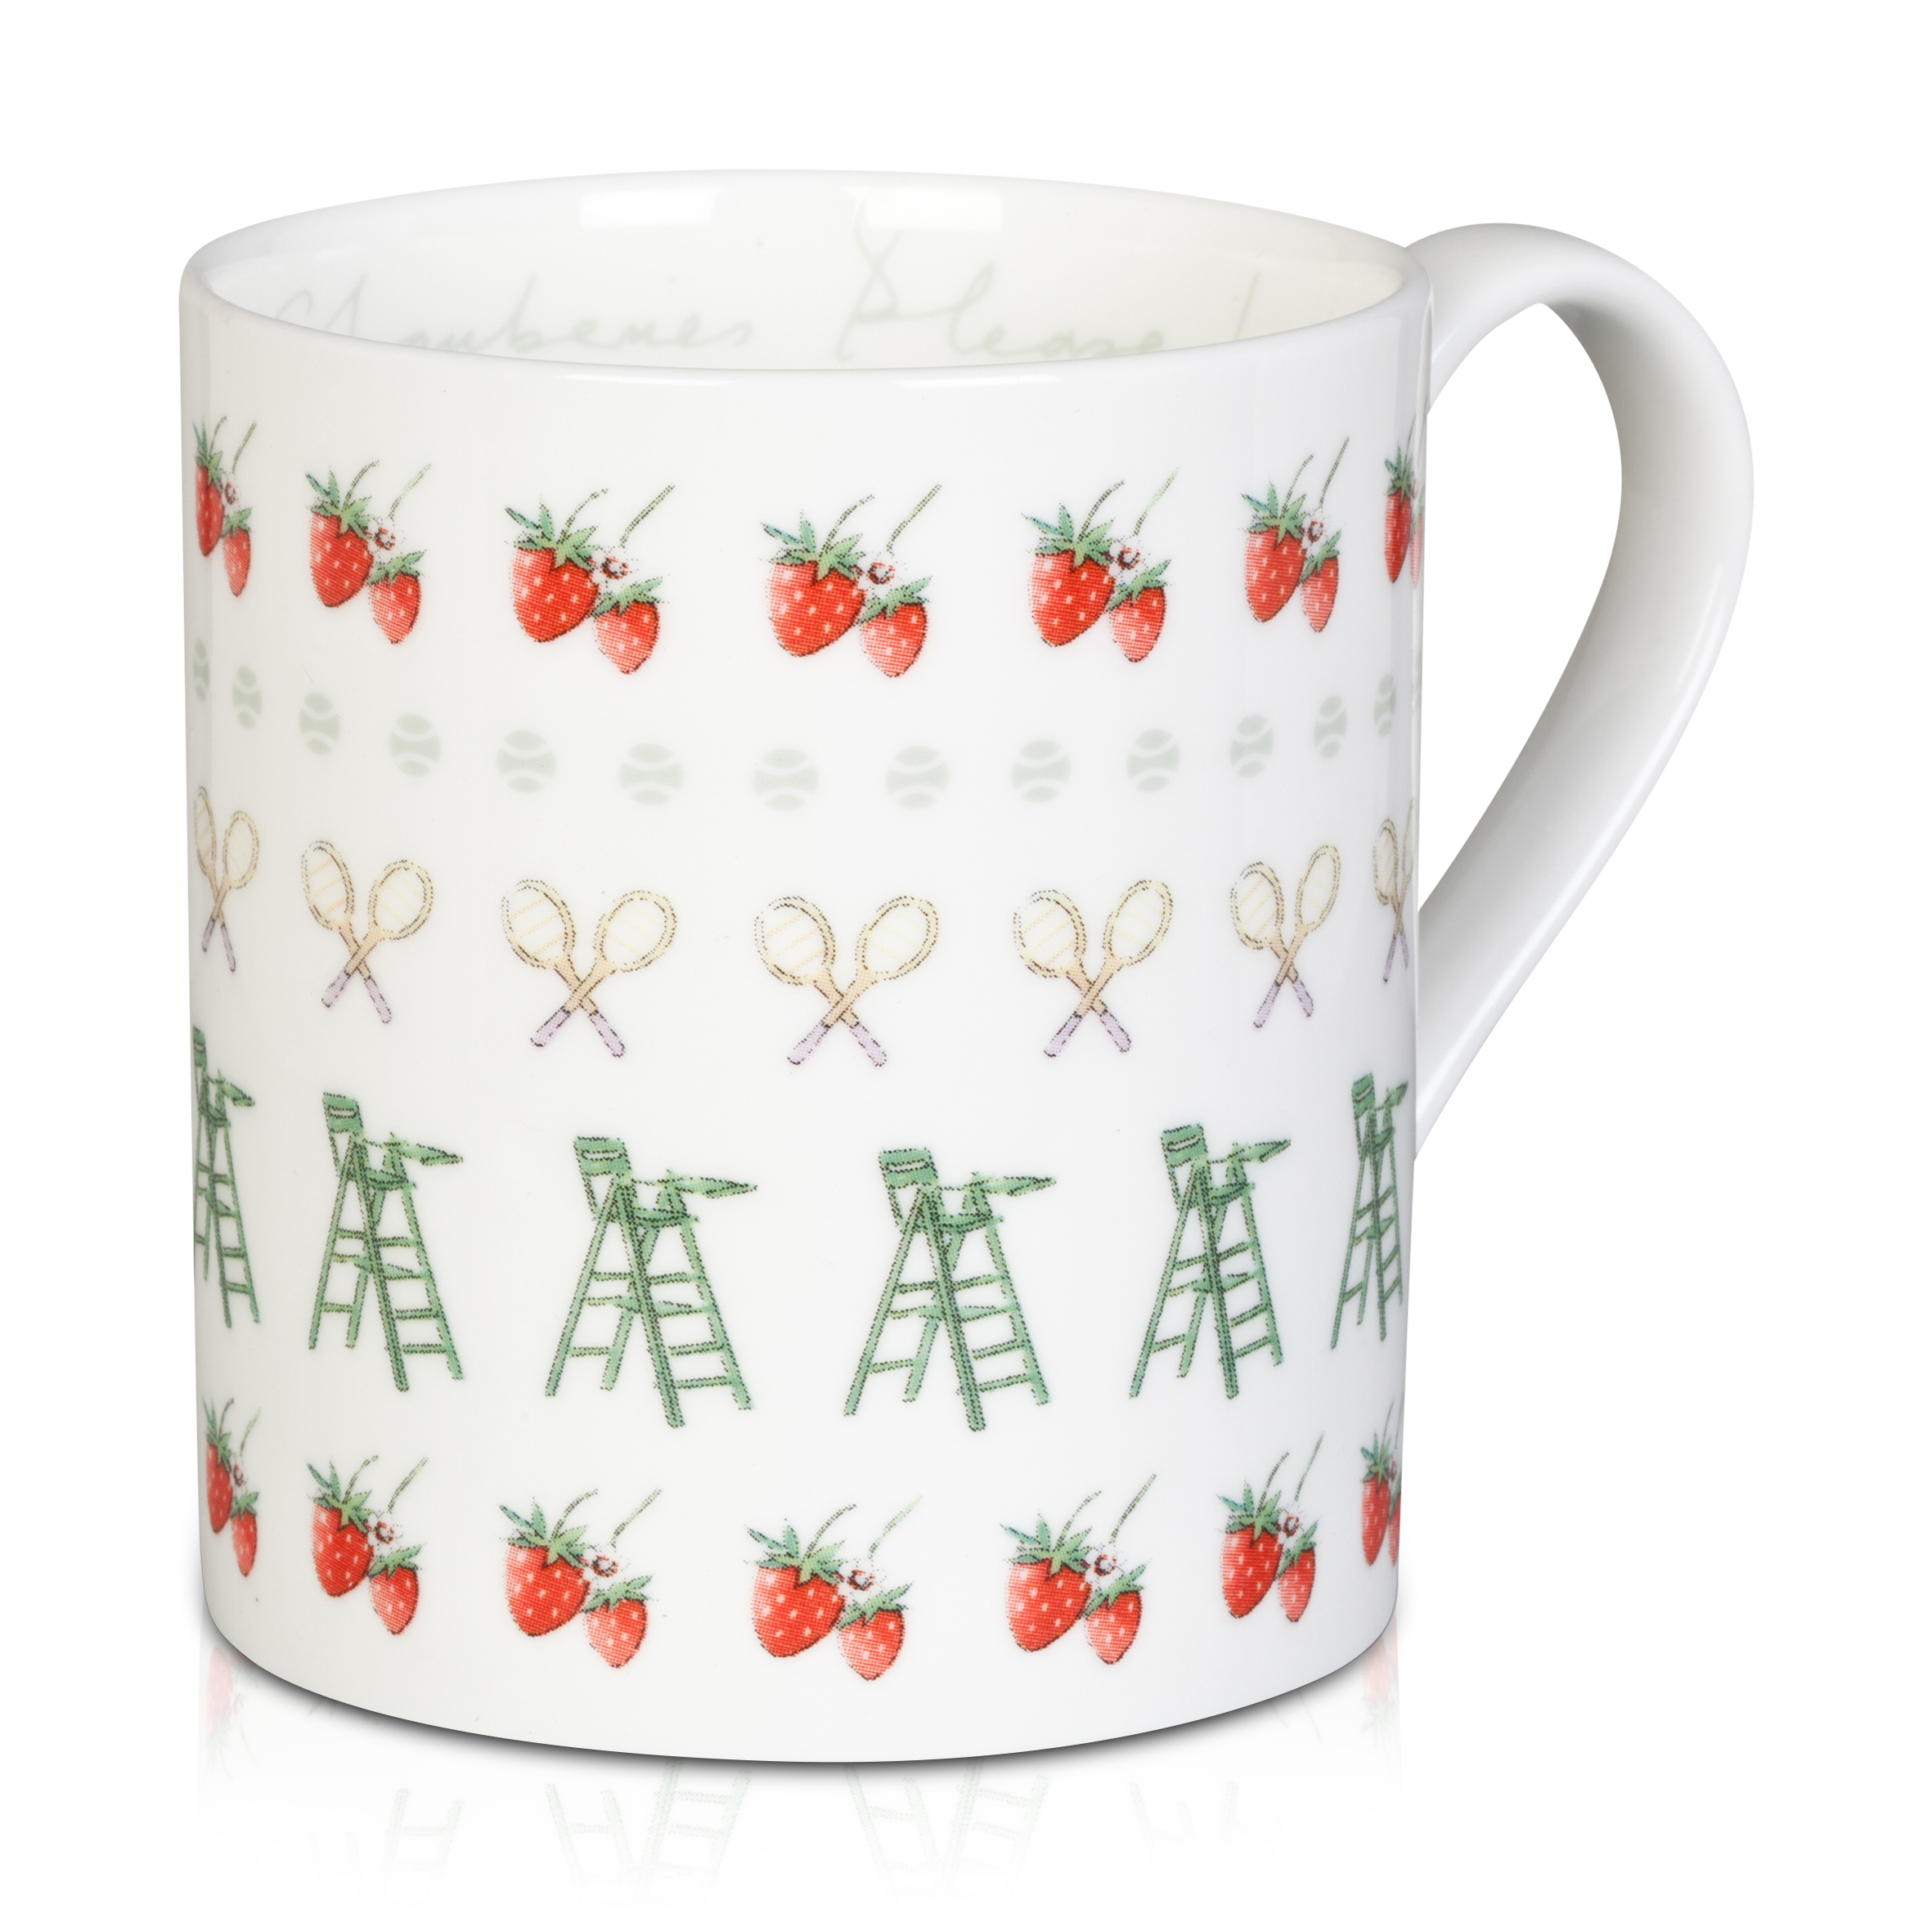 Wimbledon 'More Strawberries' Mug - White